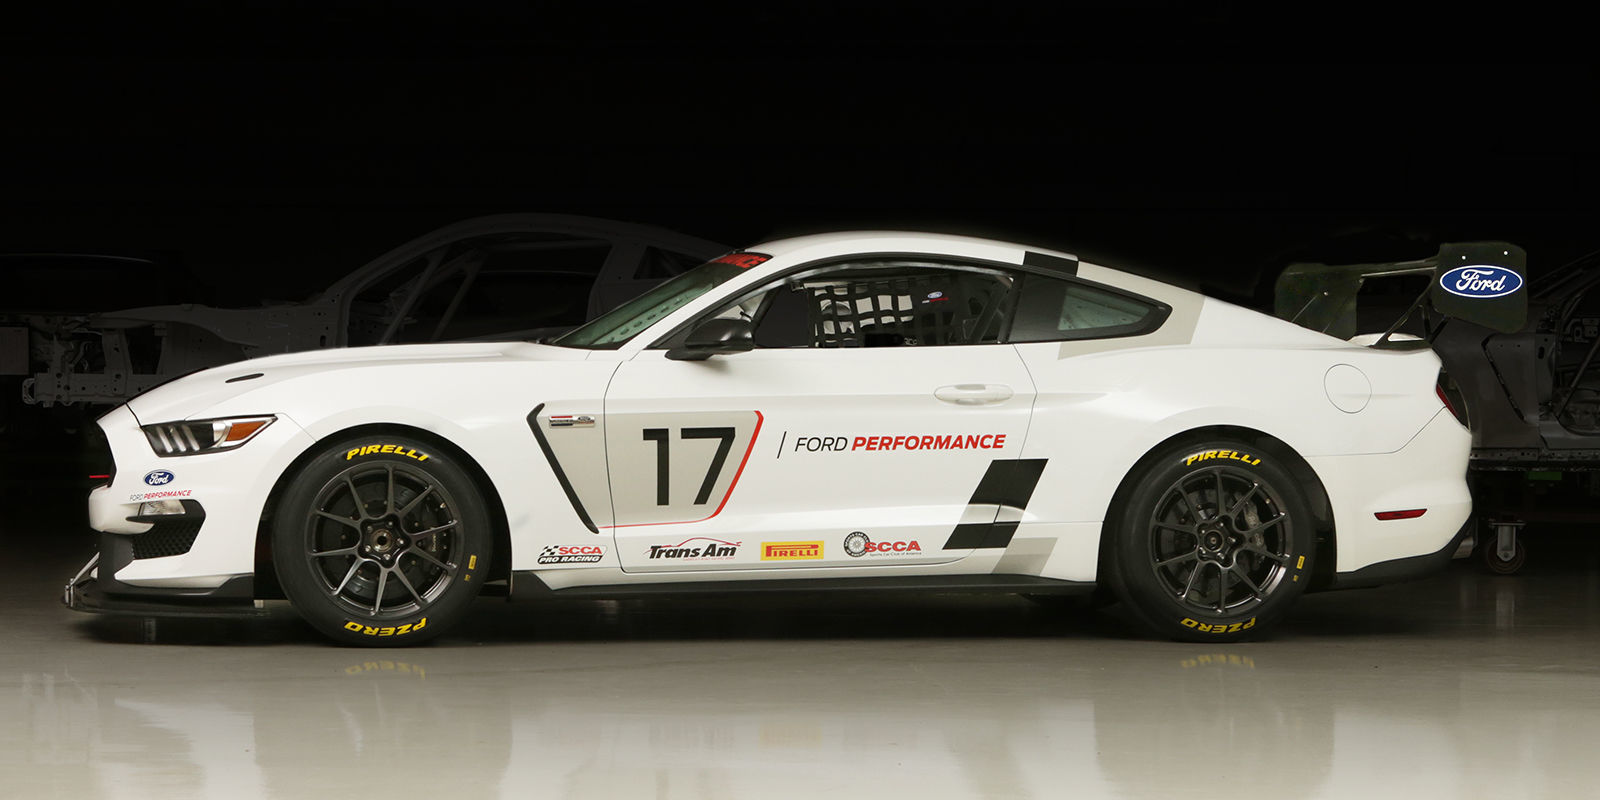 ford performance shelby fp350s is the latest track ready mustang